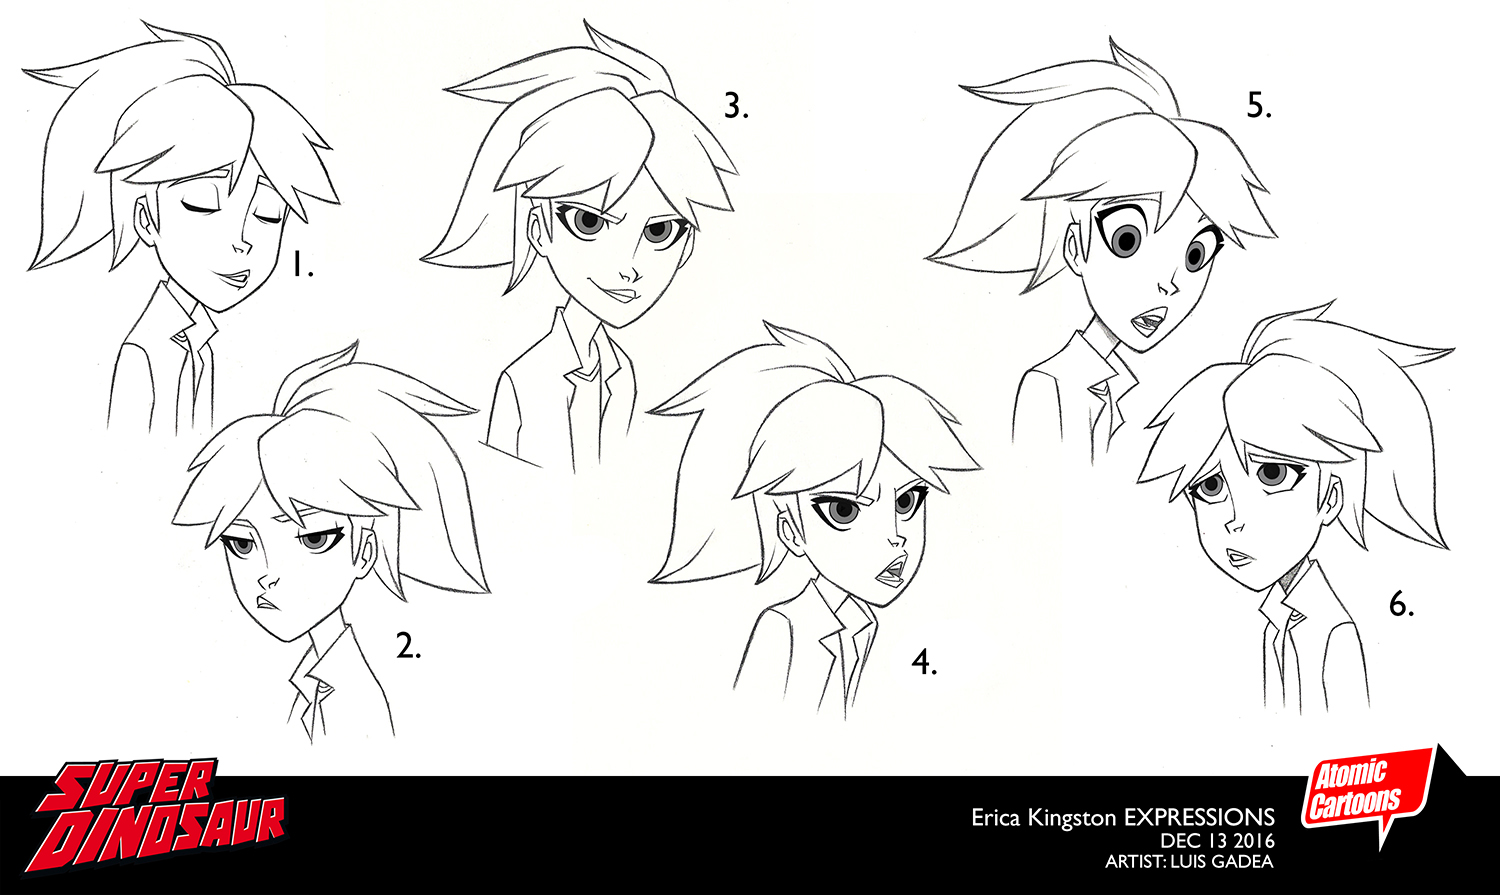 EricaKingston_Expressions_001_low_LG.jpg